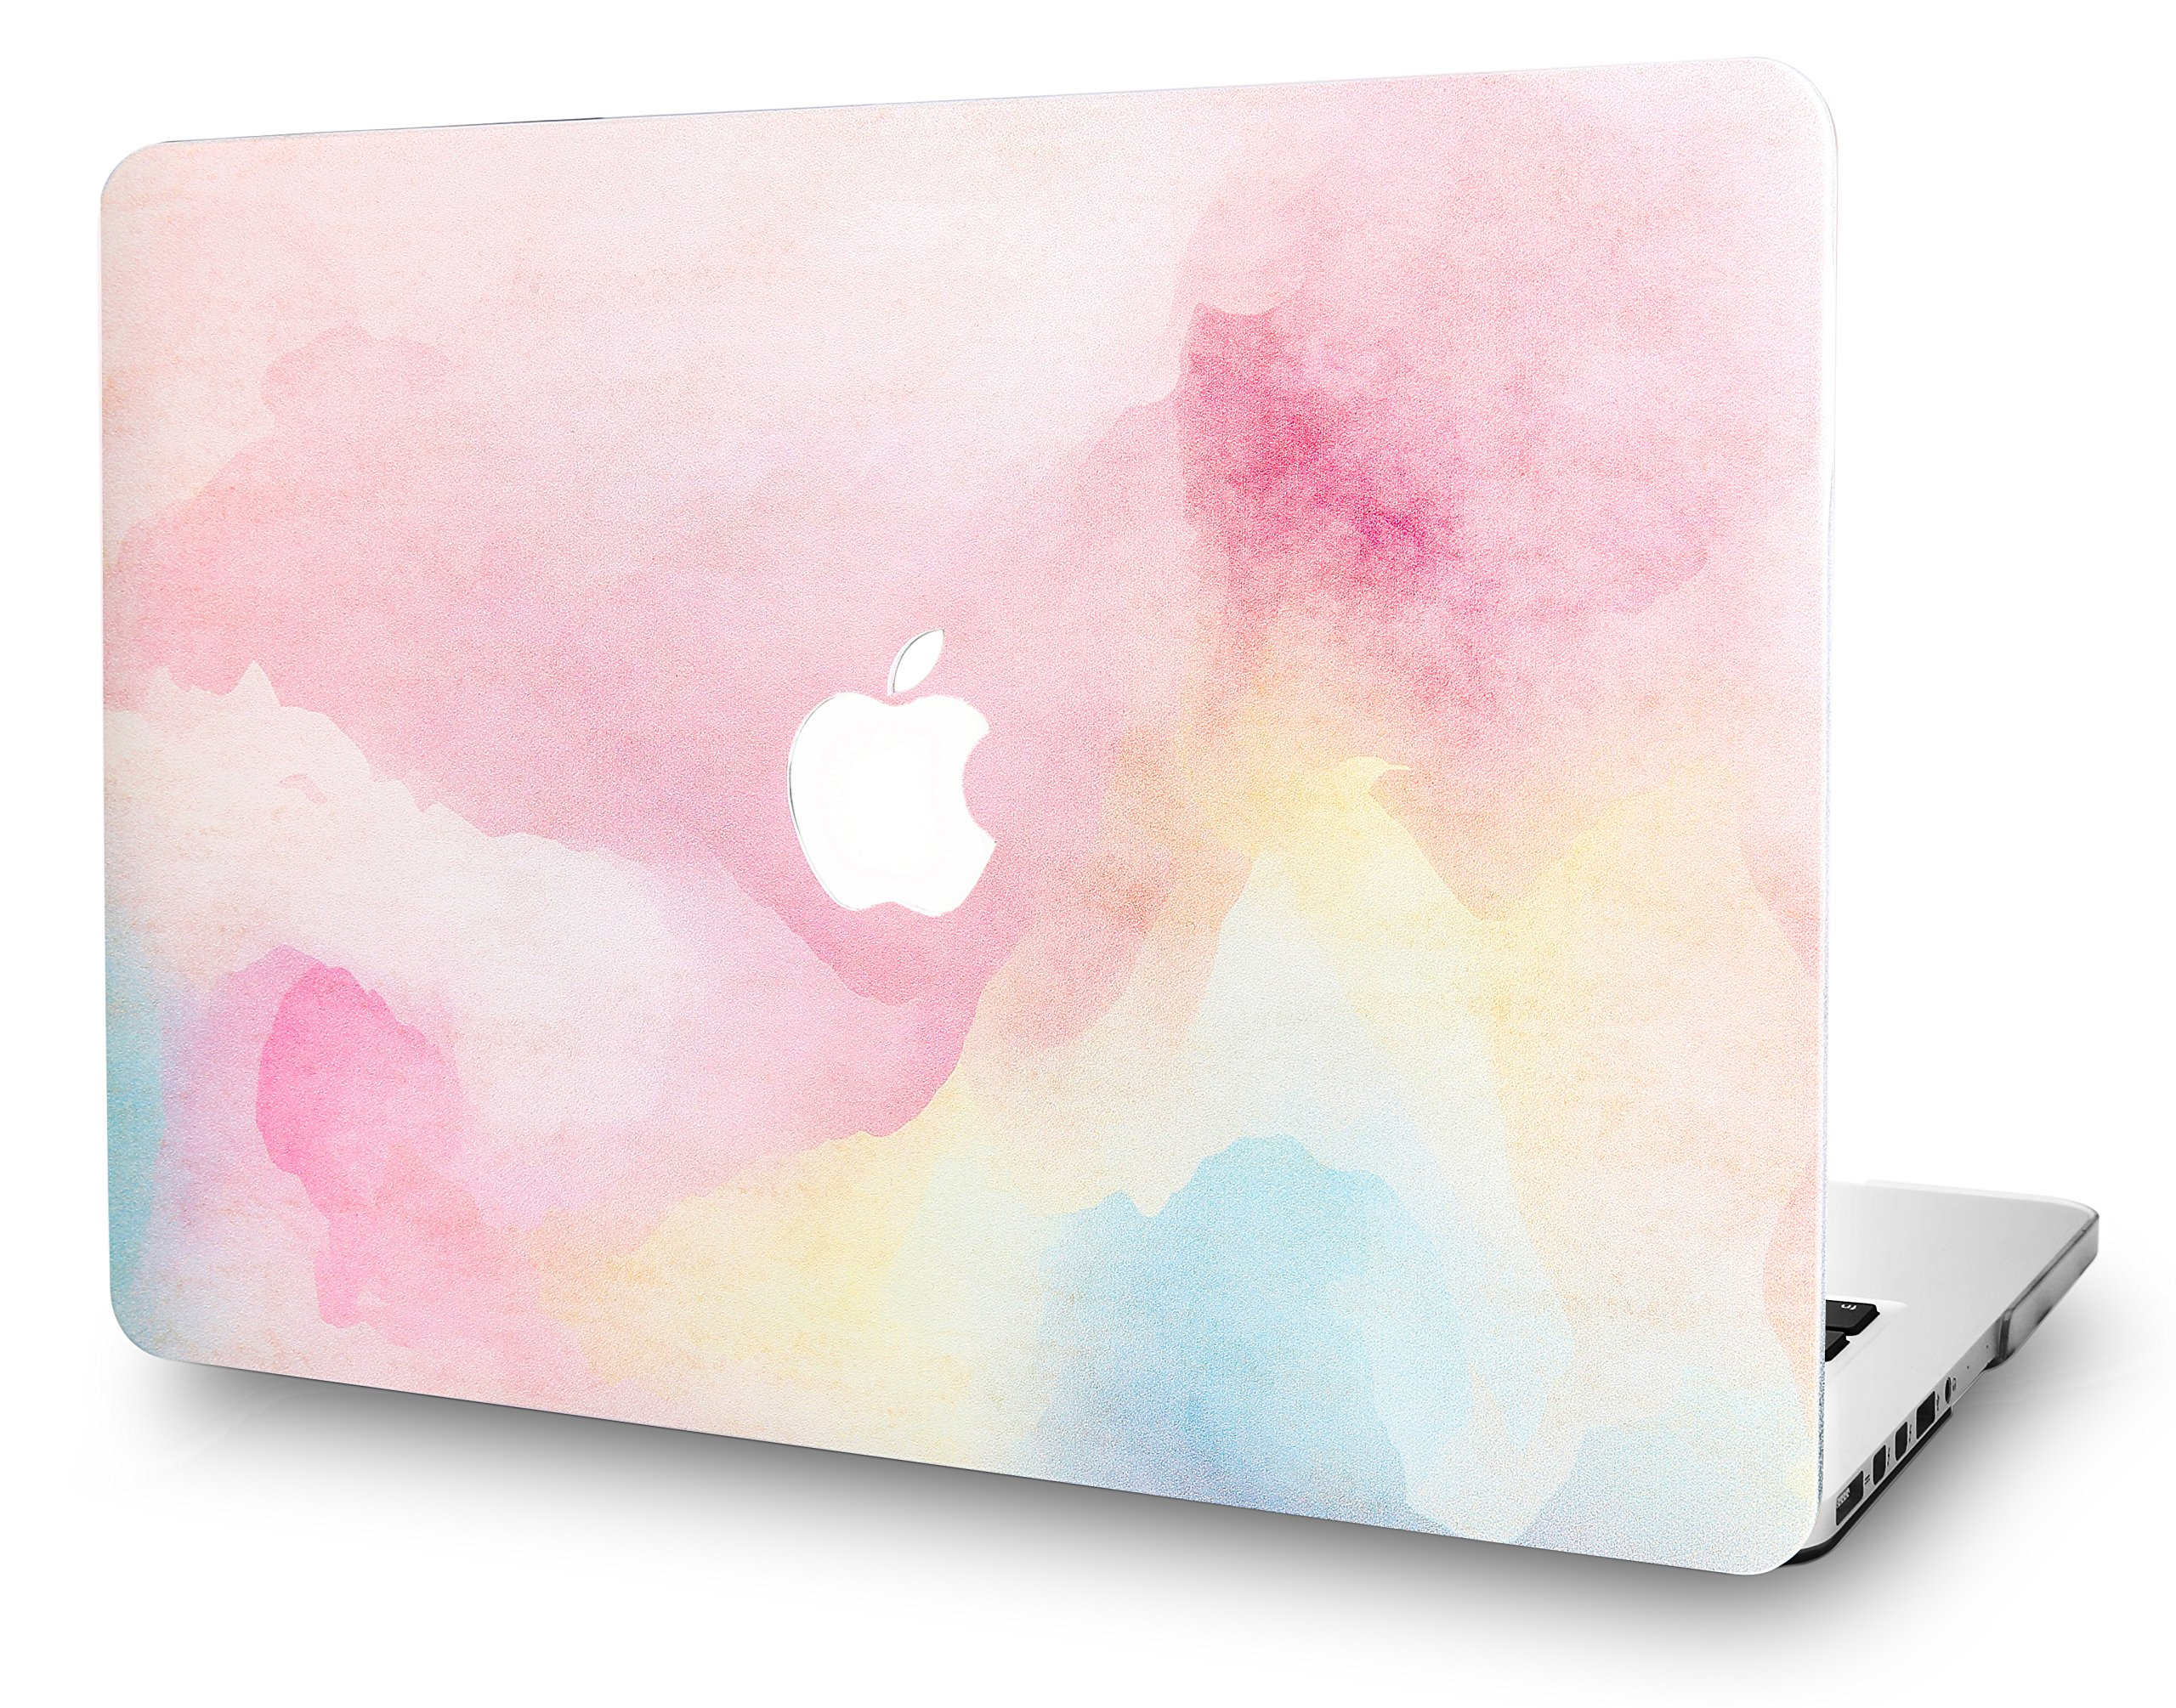 KEC Laptop Case for MacBook Pro 13'' (2018/2017/2016) Plastic Hard Shell Cover A1989/A1706/A1708 Touch Bar (Rainbow Mist)